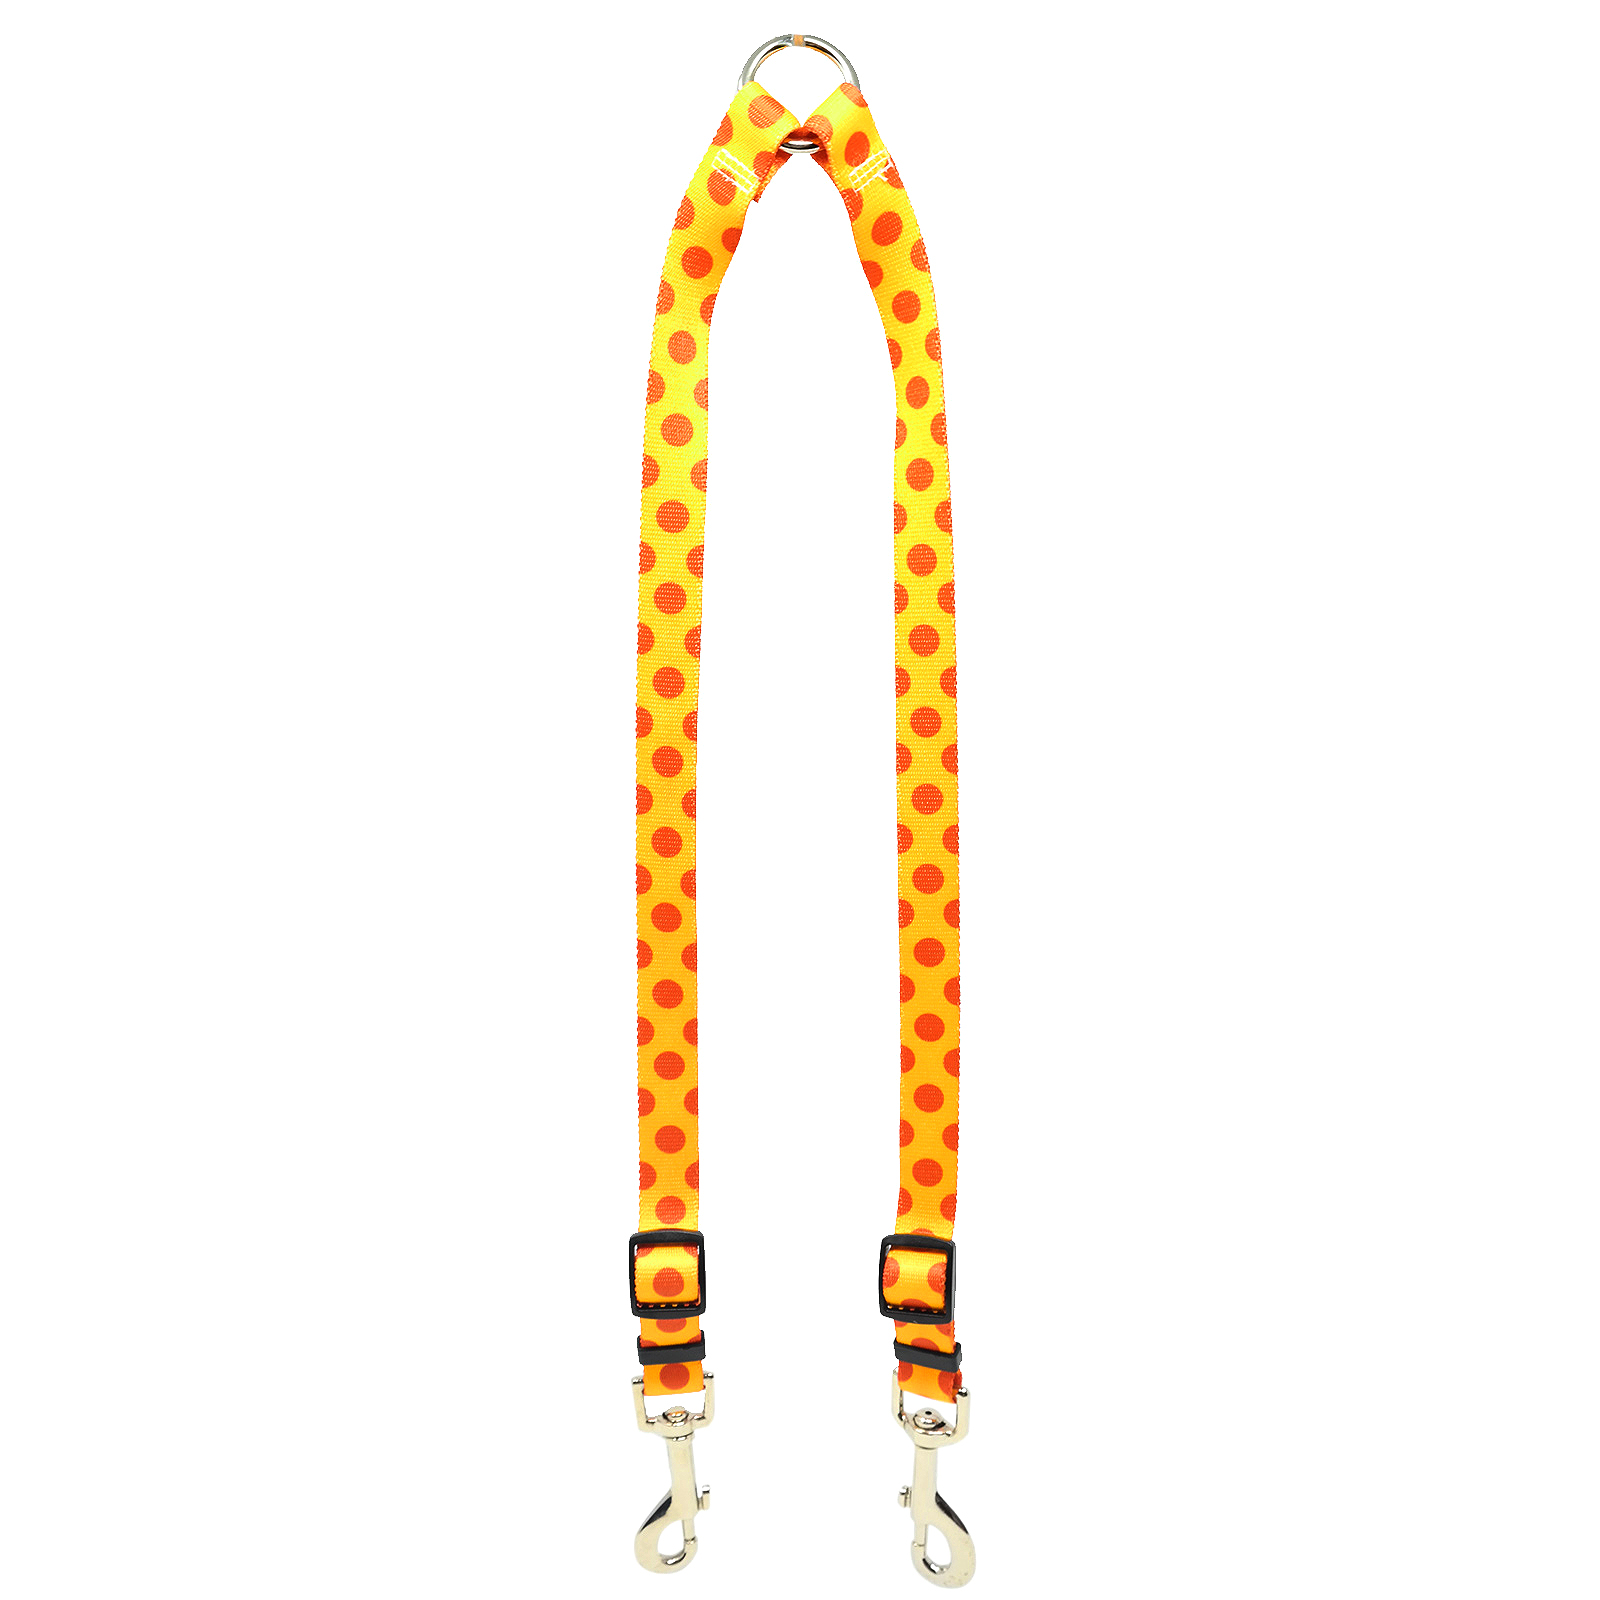 Goldenrod & Orange Polka Coupler Lead